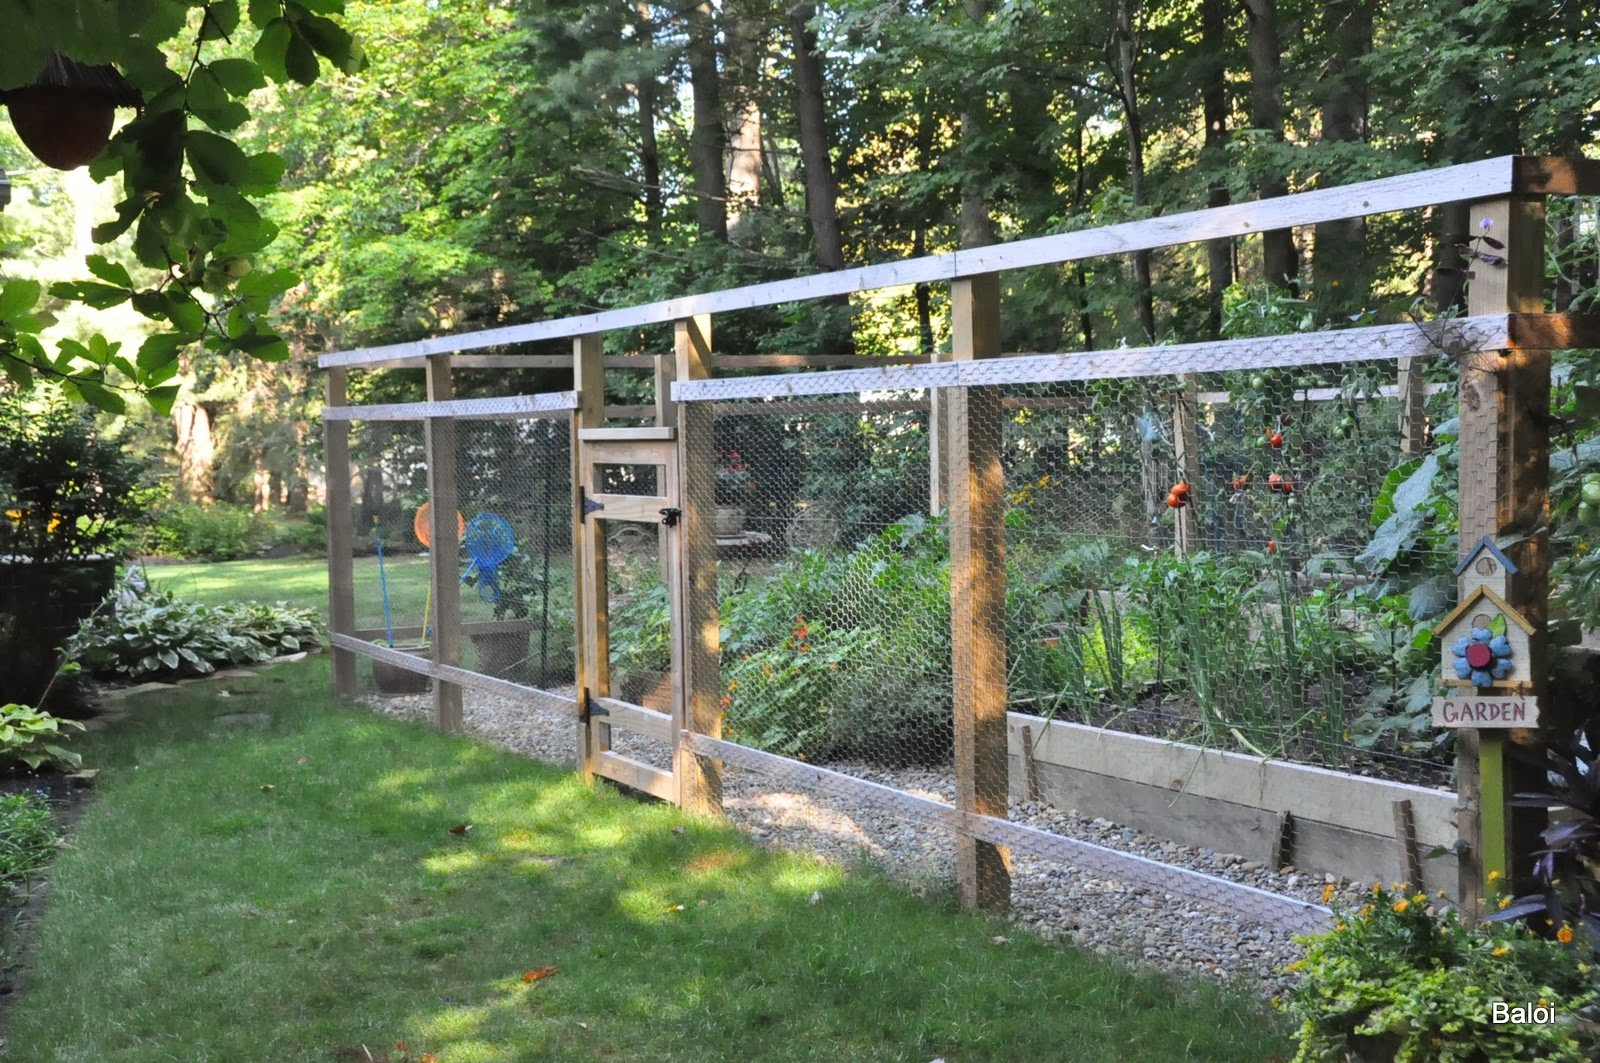 Gardeners With Kids: The Vegetable Garden Fence